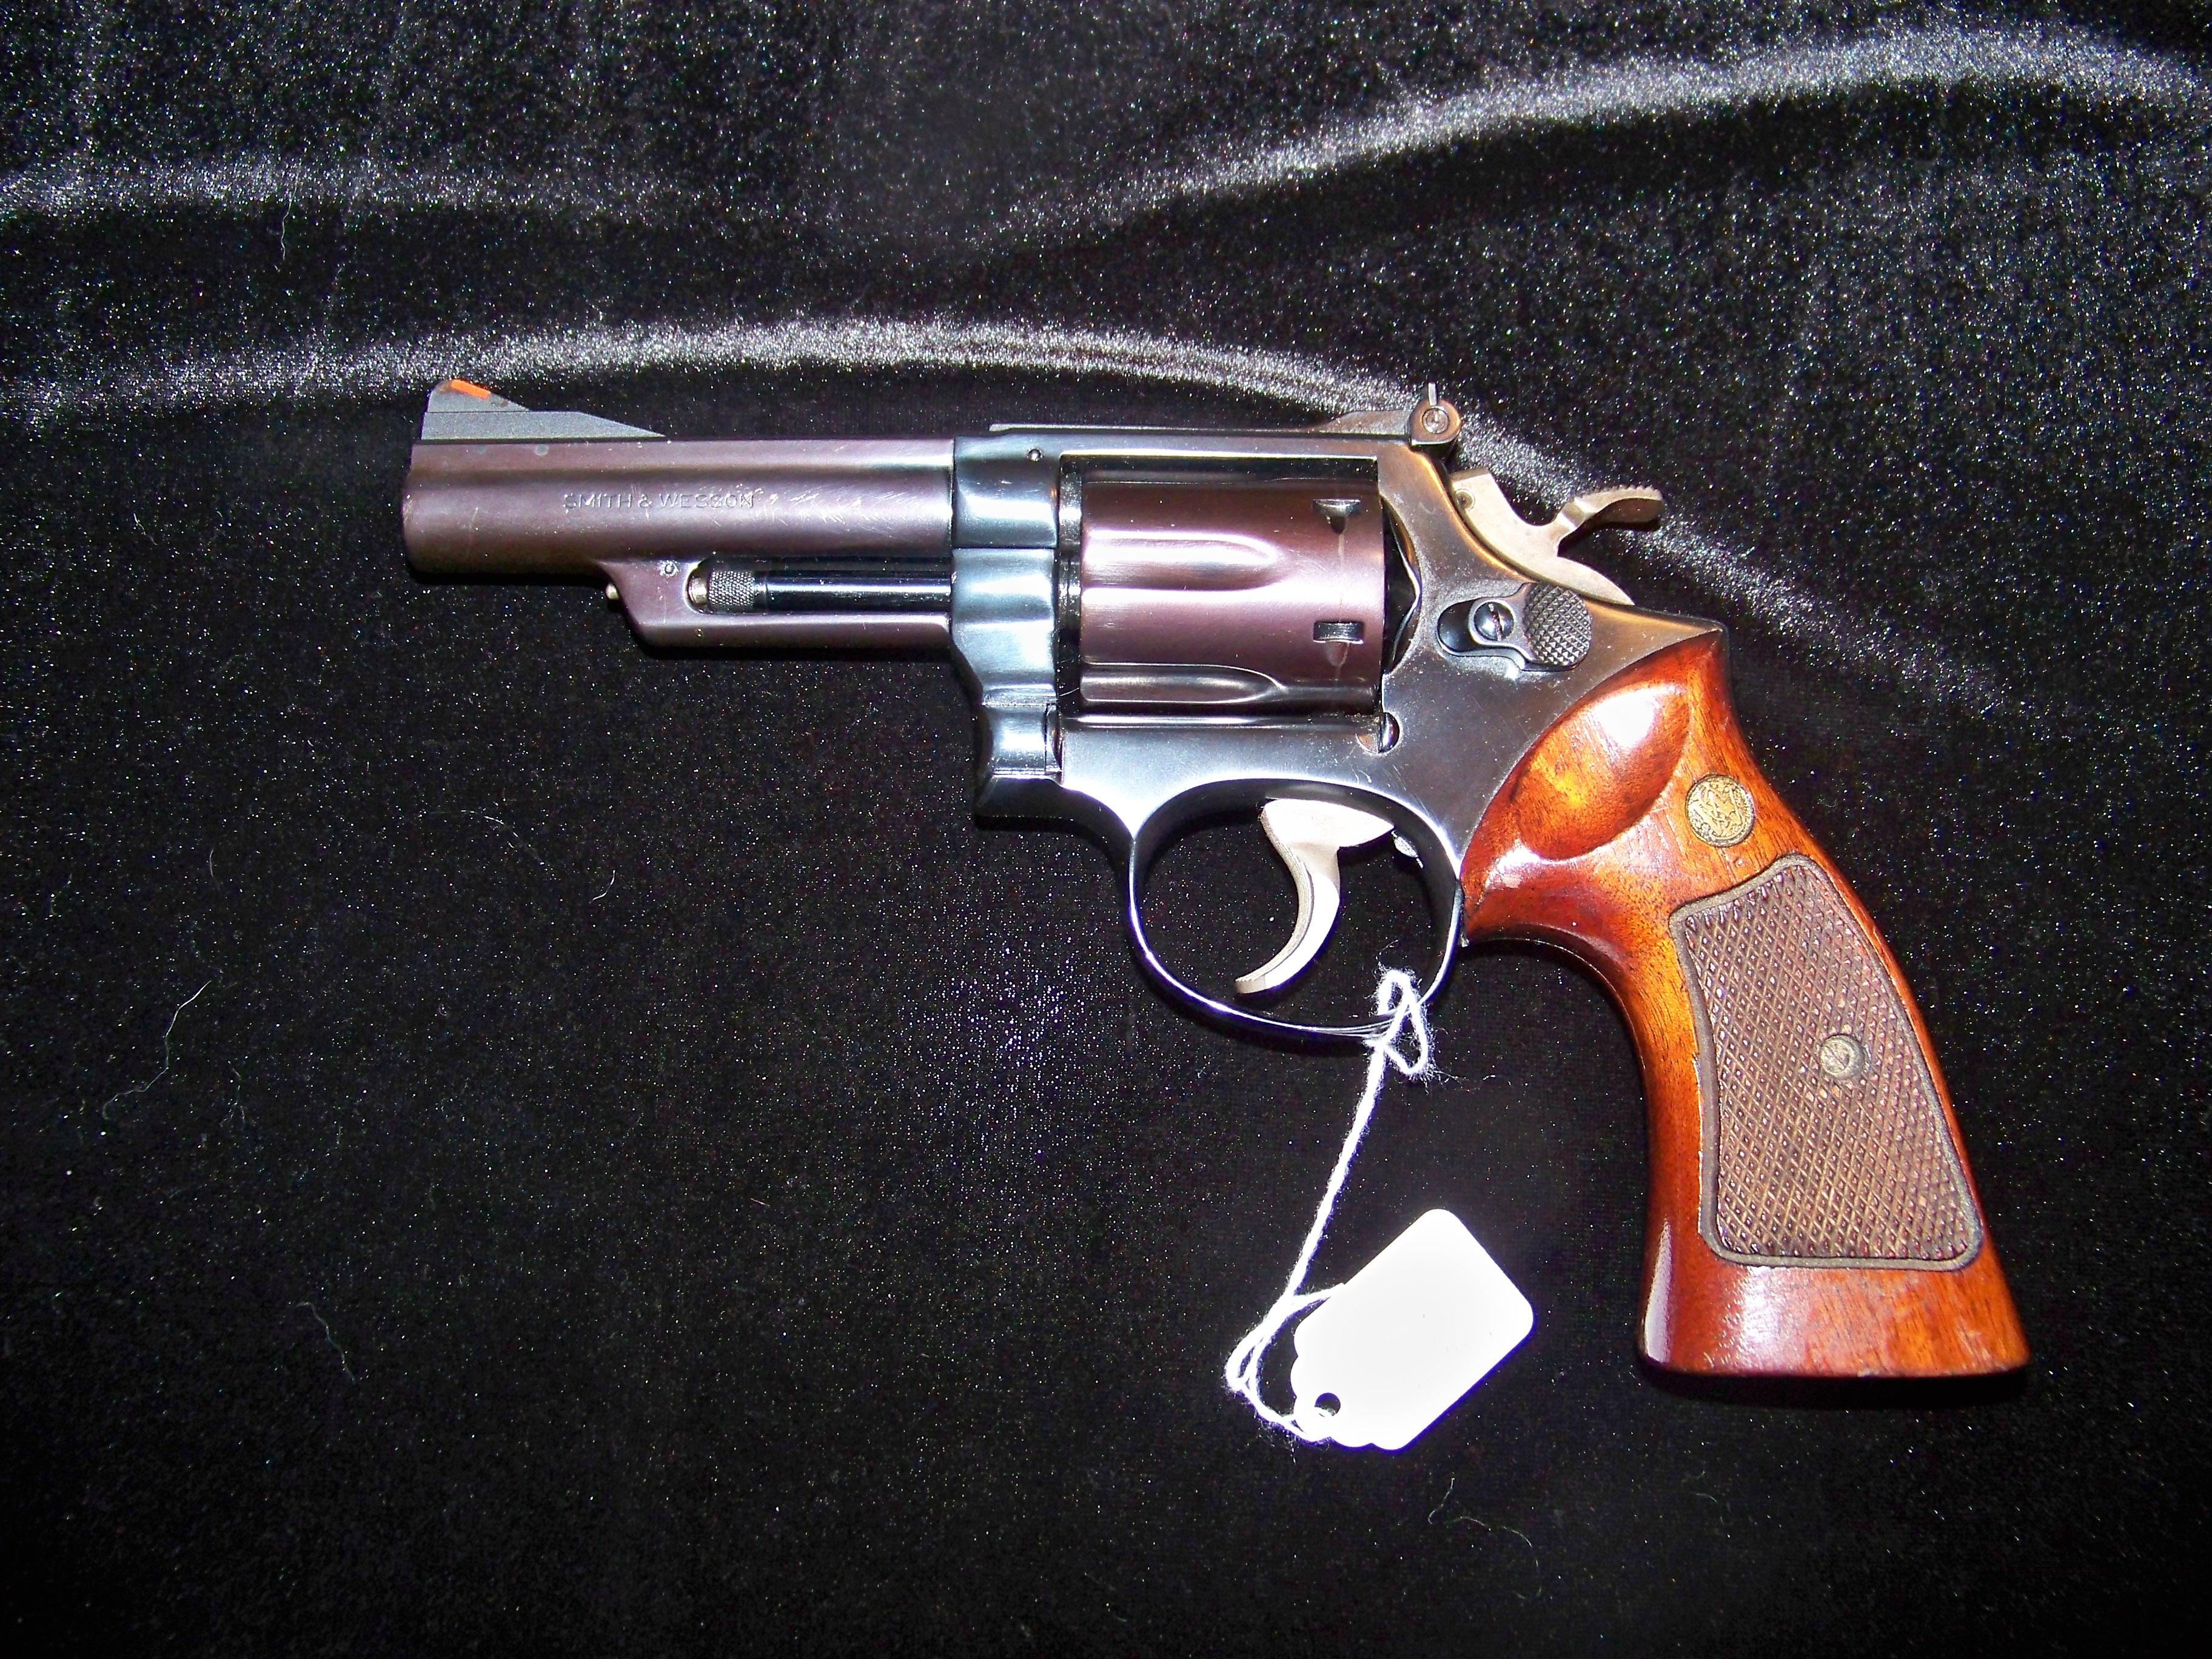 ((SOLD PENDING FUNDS)))SMITH & WESSON MODEL 19 357MAG  Guns > Pistols > Smith & Wesson Revolvers > Full Frame Revolver